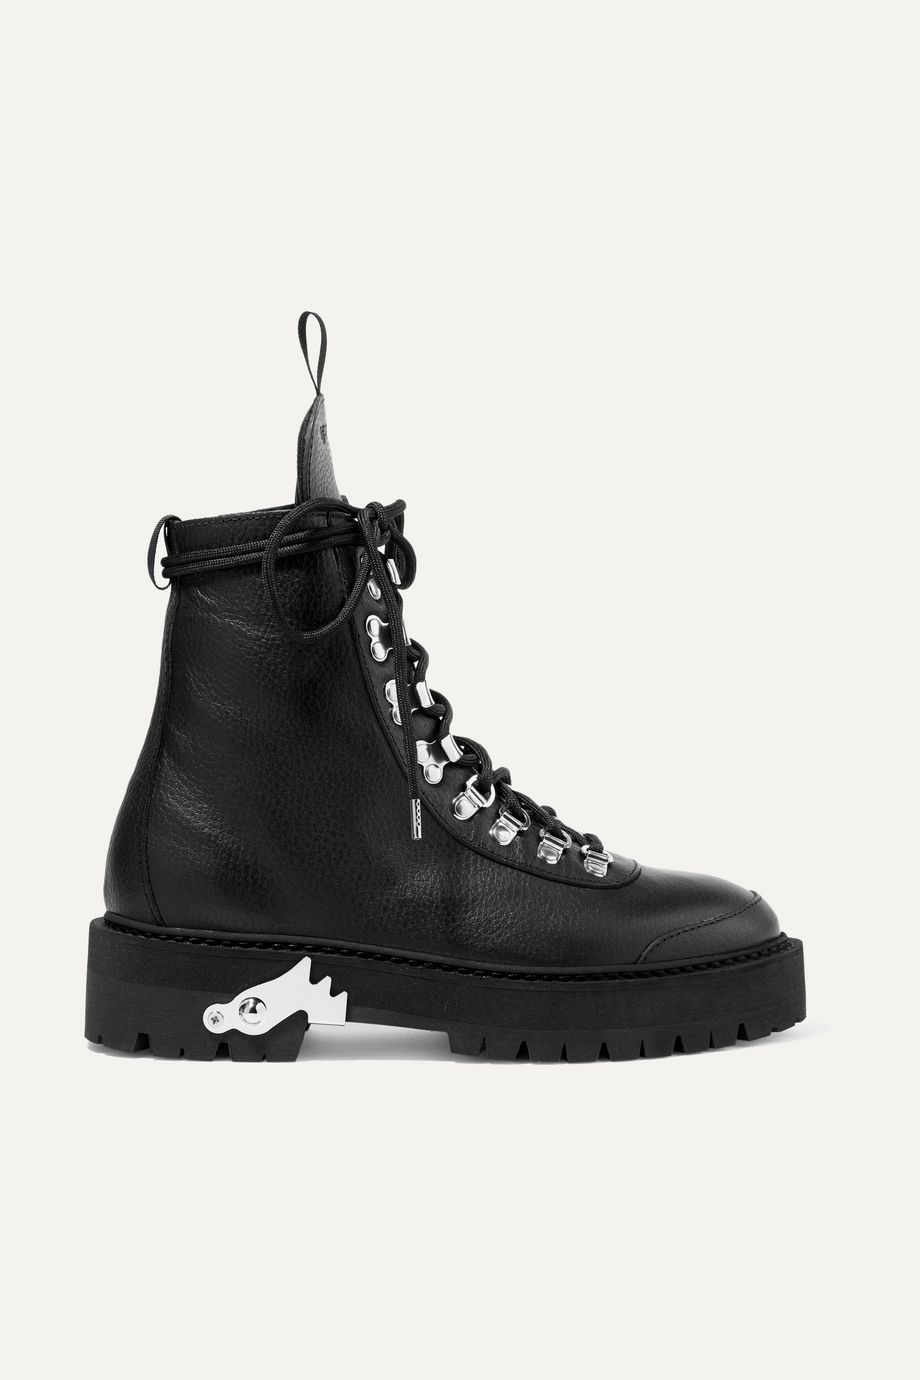 Off-White Hiking textured-leather ankle boots